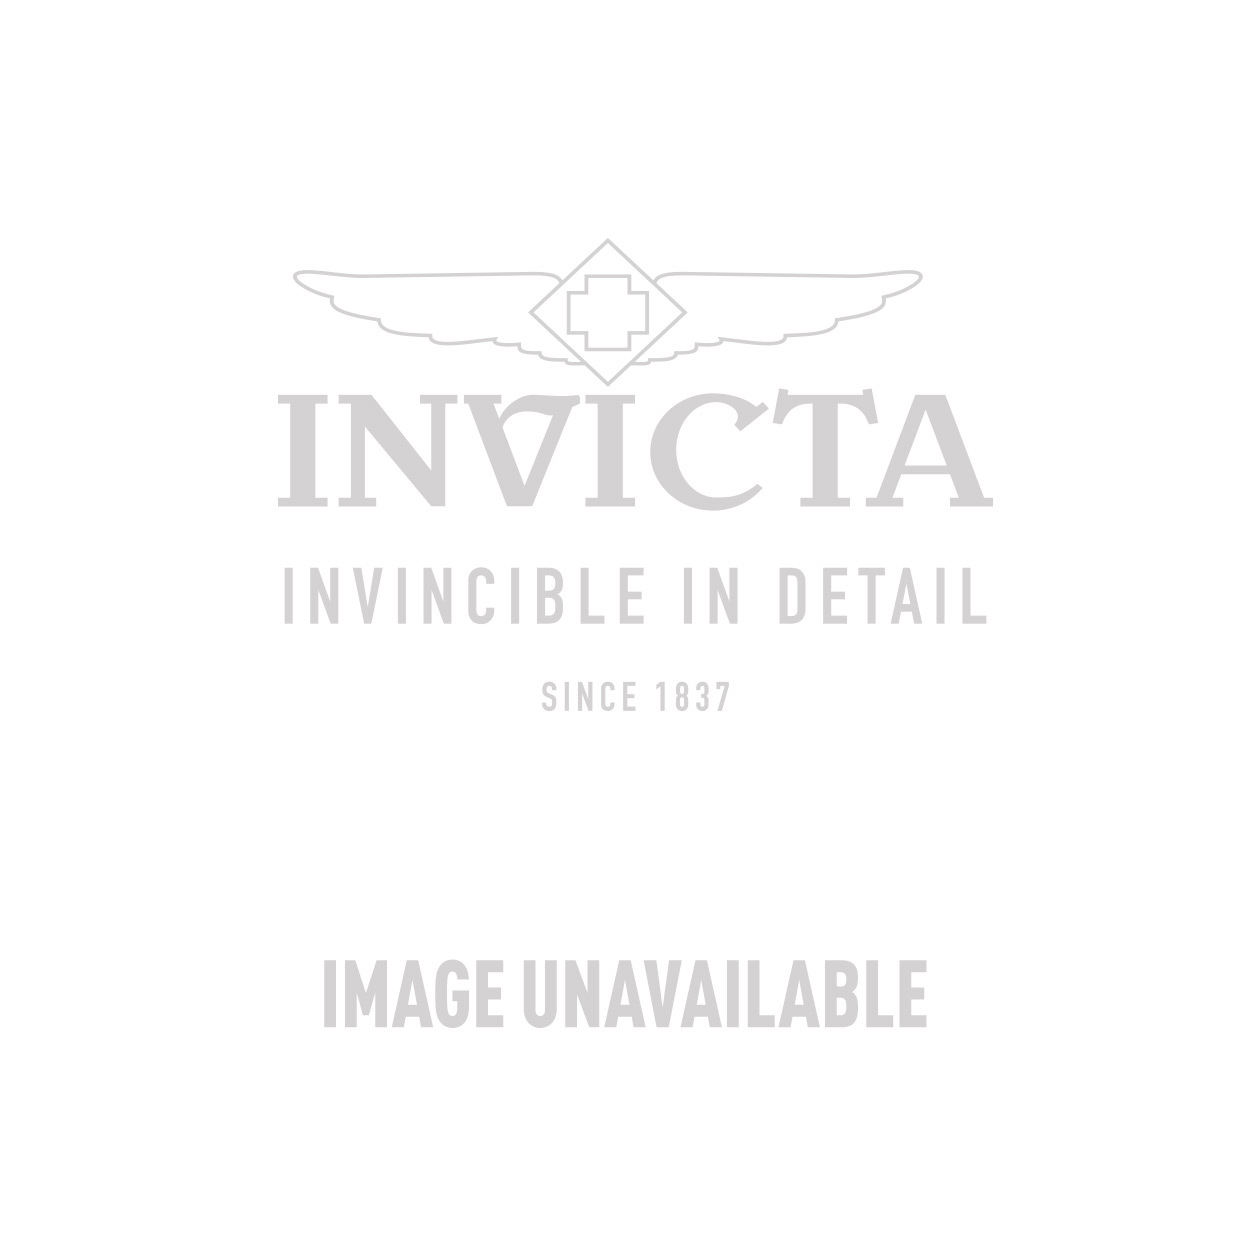 Invicta Sea Base Automatic Watch - Stainless Steel case Stainless Steel band - Model 17957